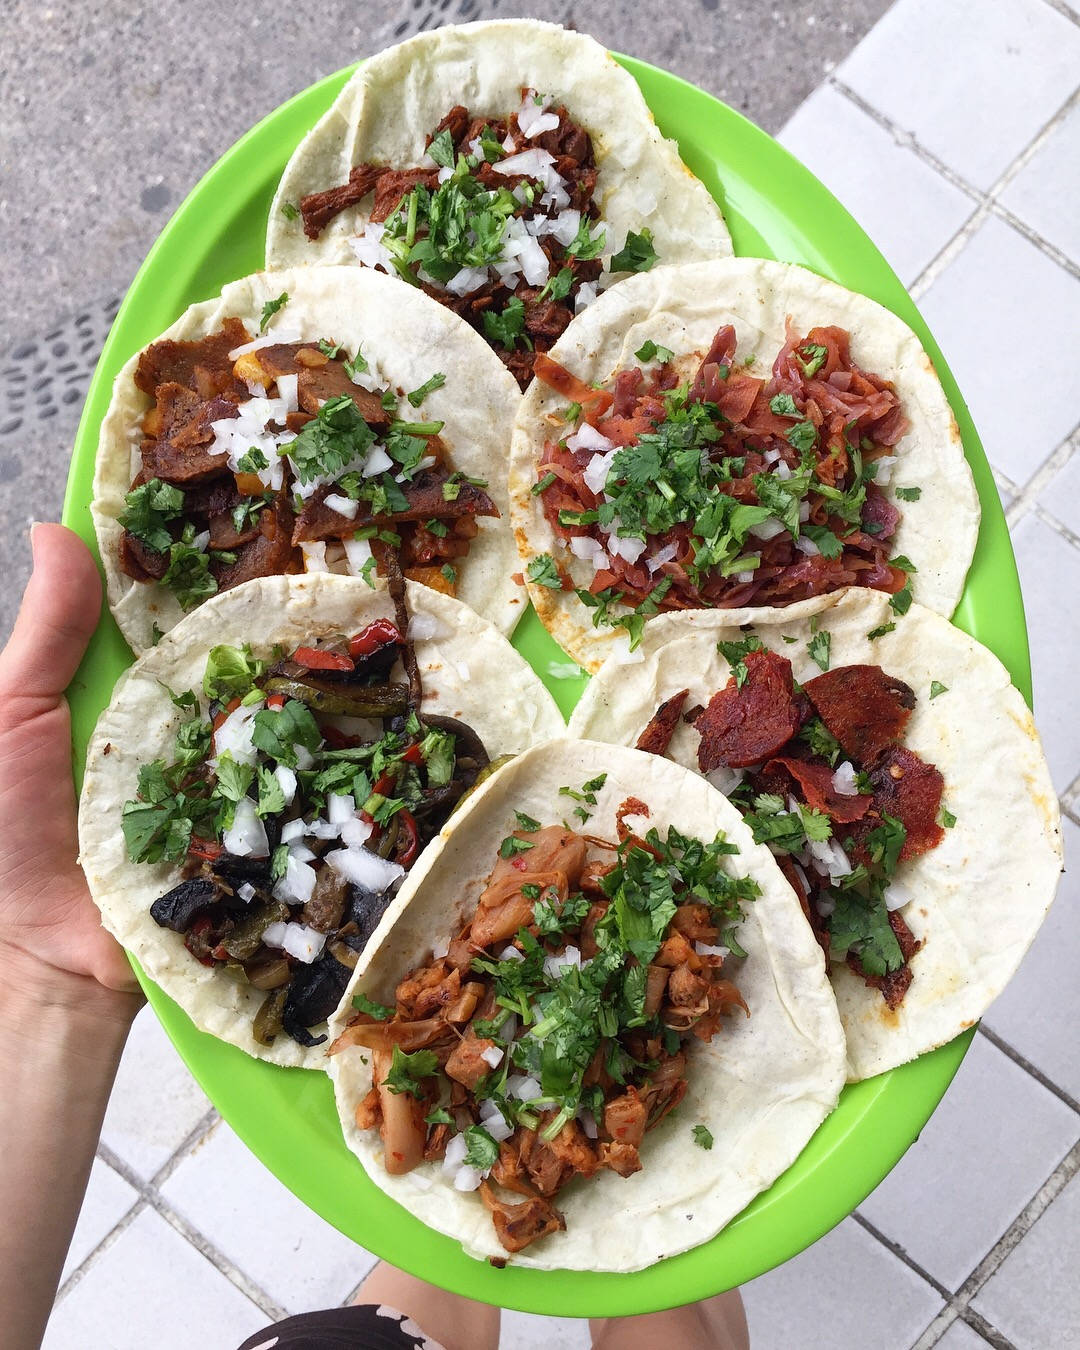 One of each kind of taco at Veggie Table.